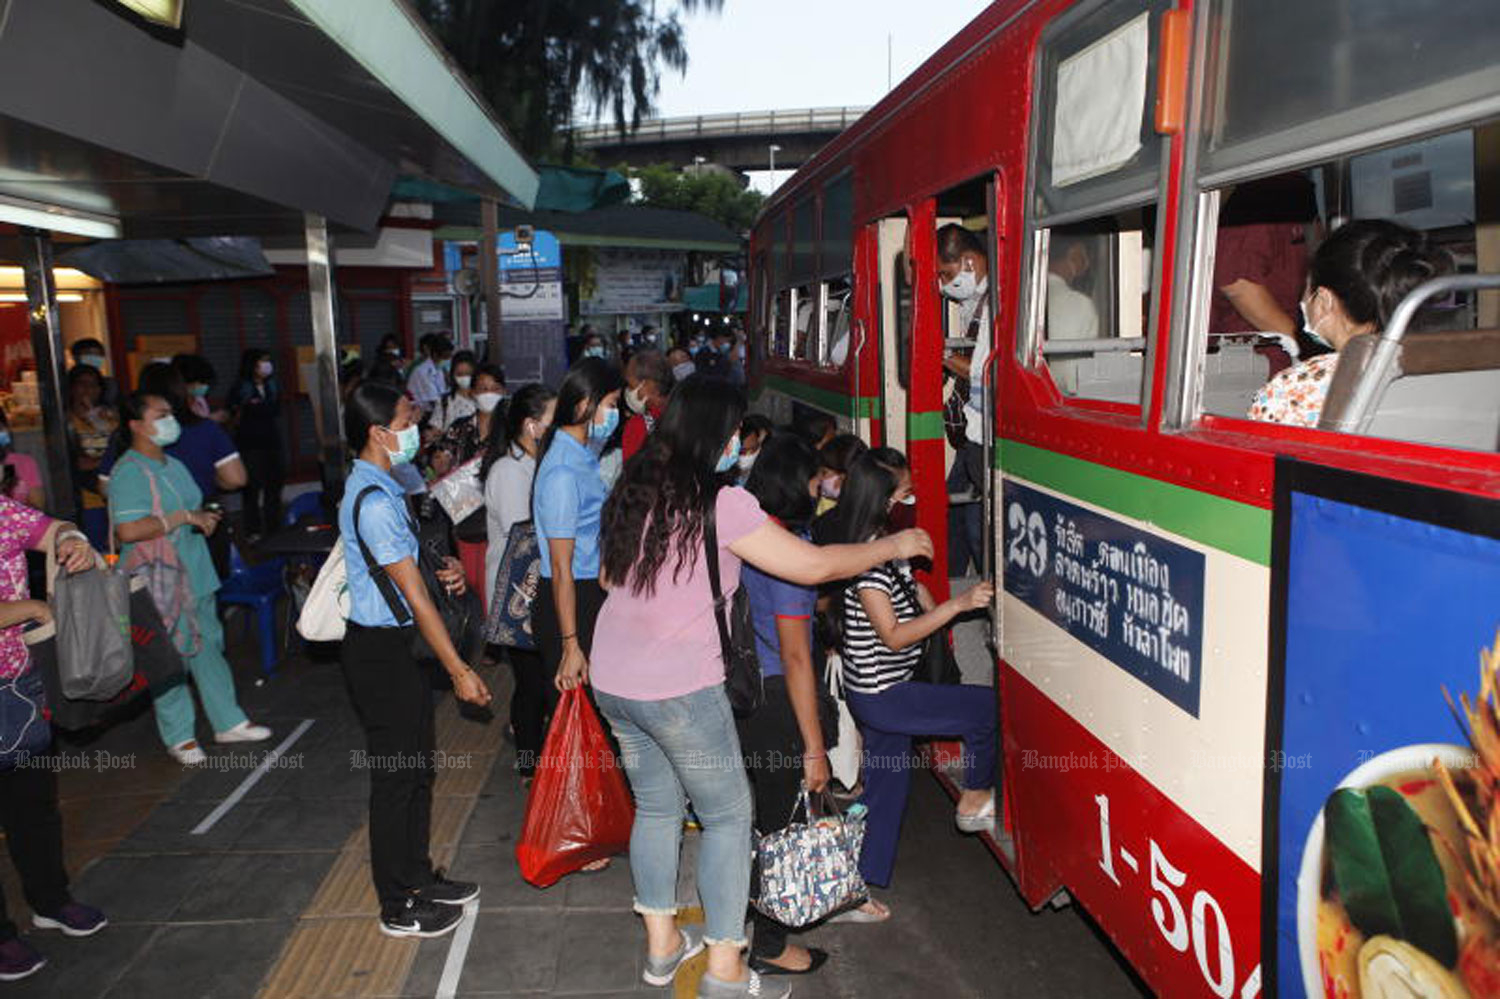 People, wearing face masks, rush to get on a bus to work during morning rush hours at the Victory Monument on May 12. (Photo by Nutthawat Wicheanbut)